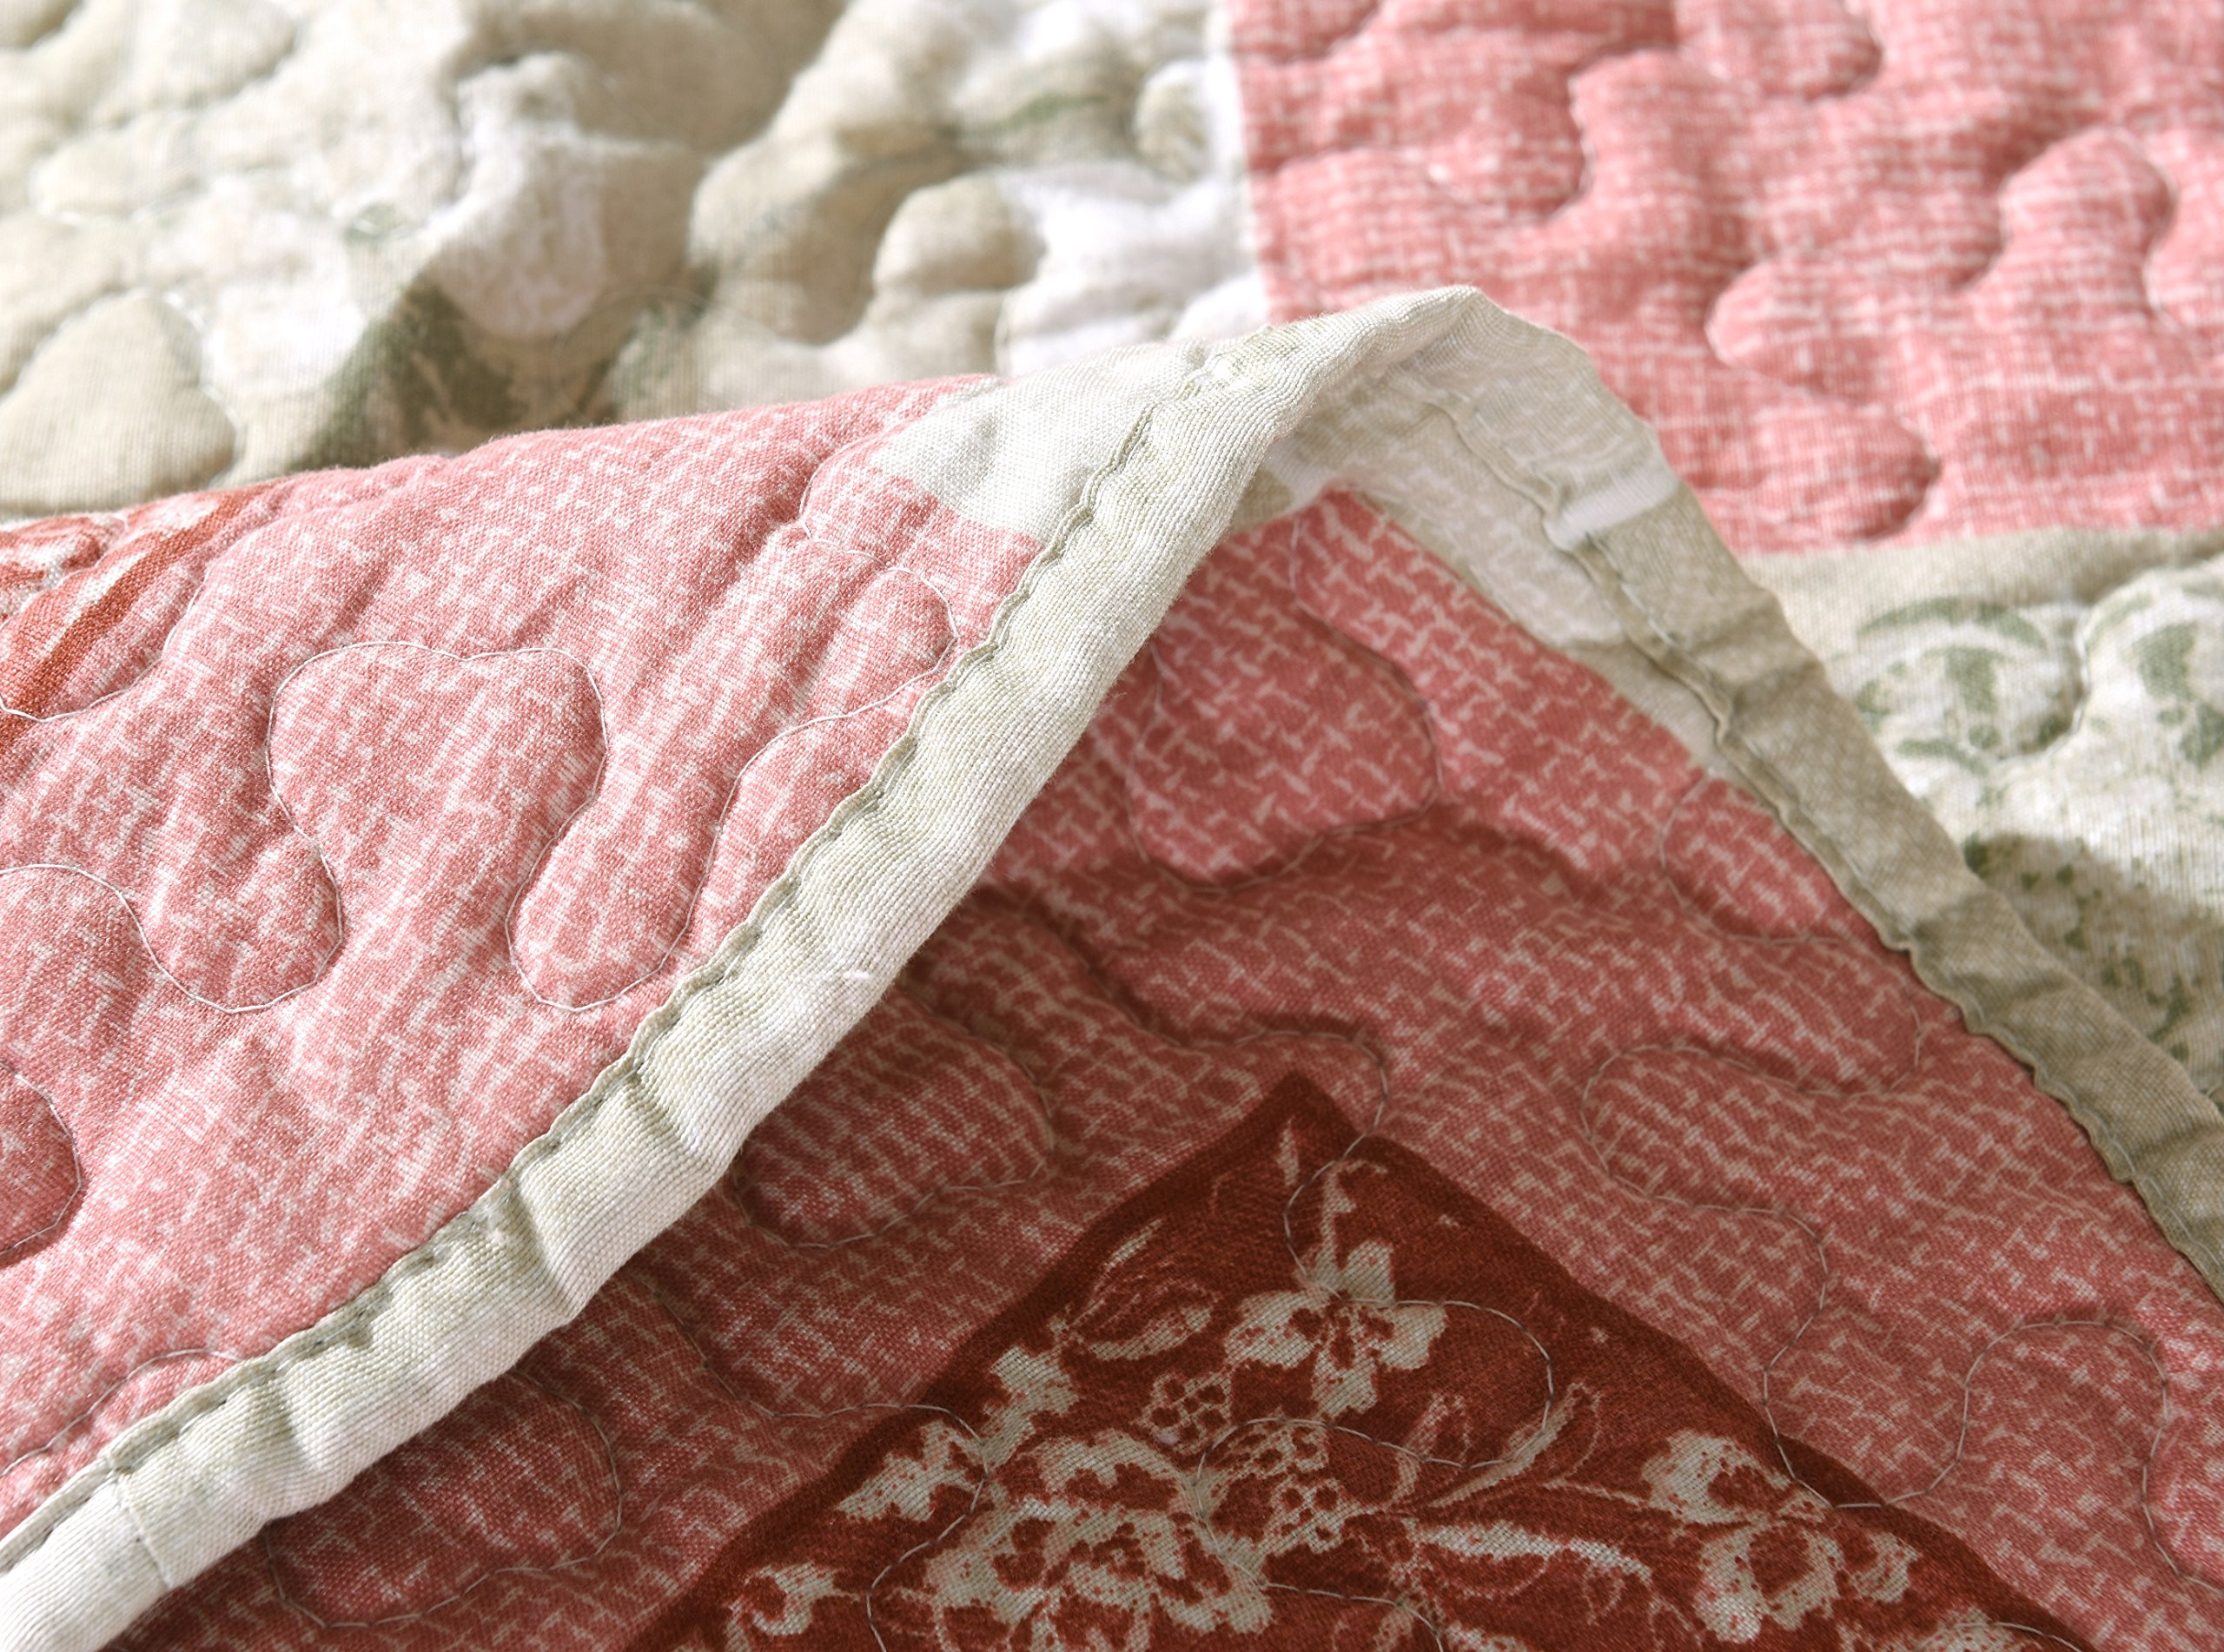 Tache Home Fashion Dainty Sweetheart Cottage Patchwork Quilted Coverlet Bedspread Set - Bright Vibrant Scalloped Multi Colorful White Red Pink Floral Print - King - 3-Pieces